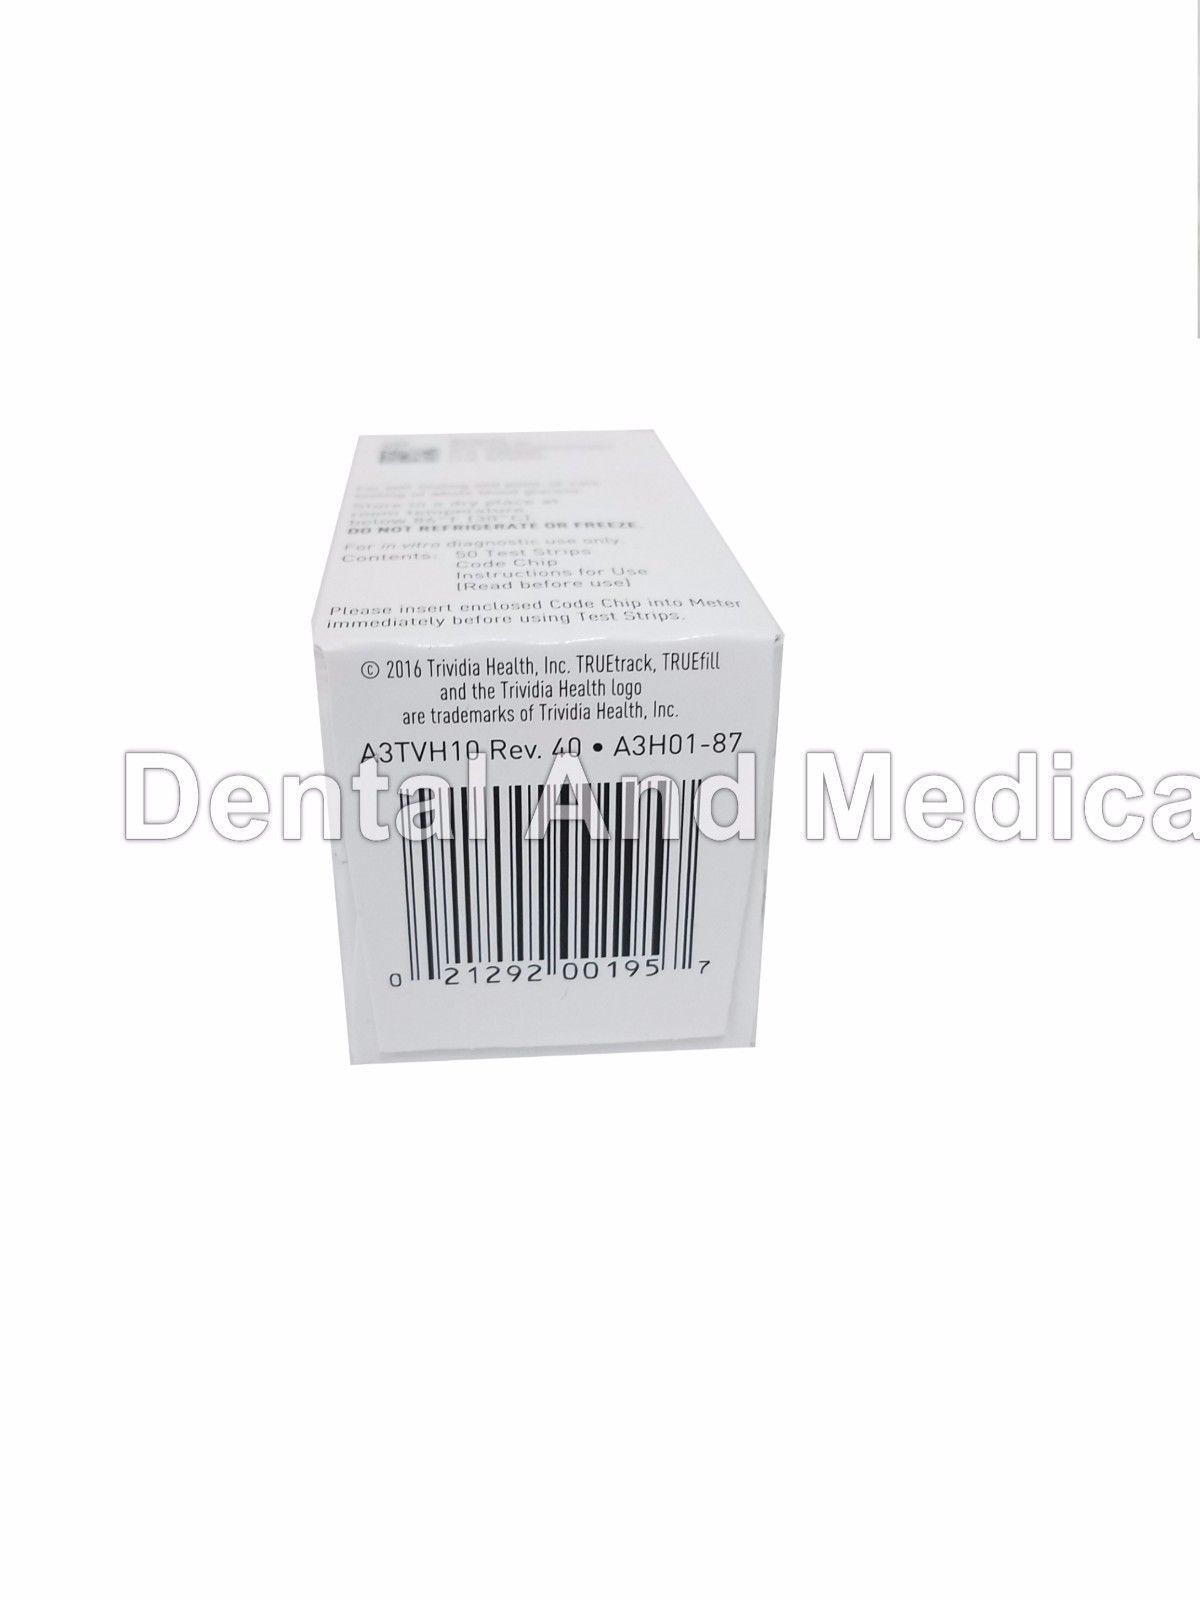 200 TRUE Track Diabetic Test Strips 4 x 50ct and 50 similar